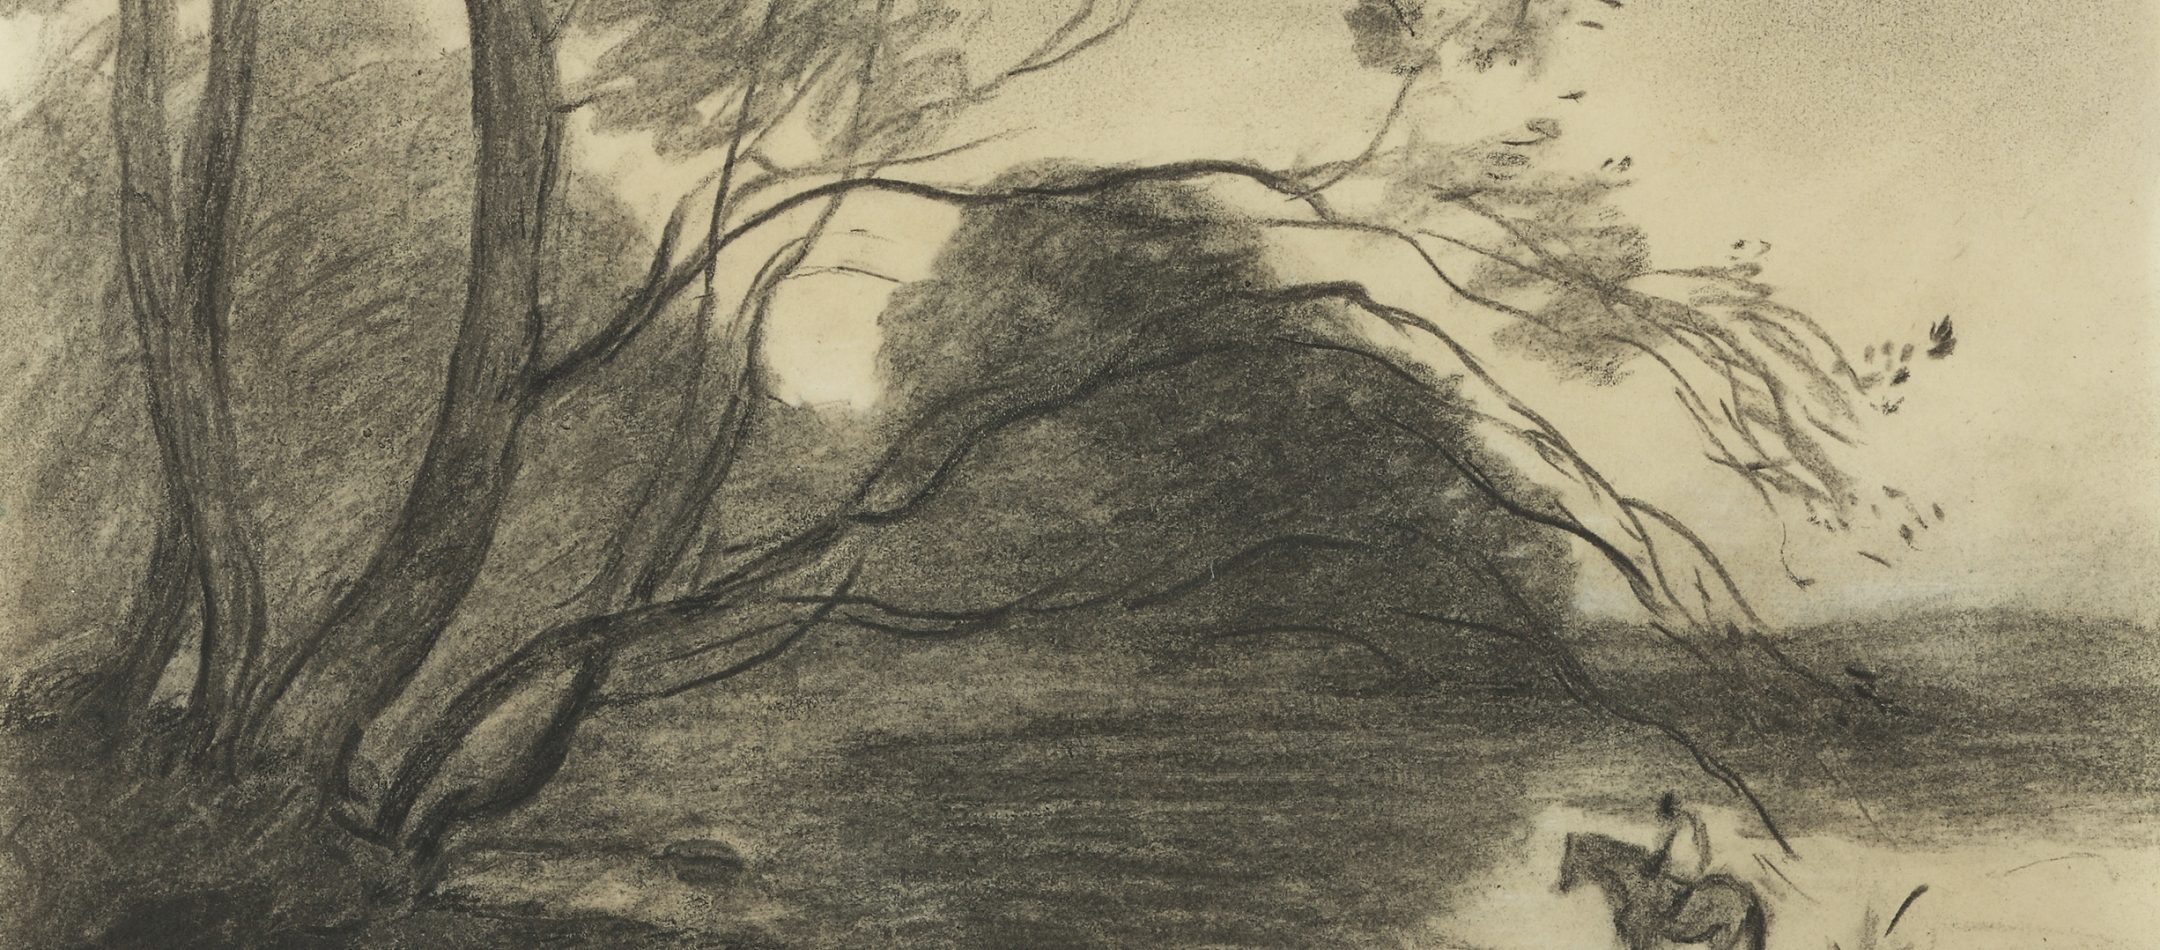 Jean-Baptiste-Camille Corot, The Ford under the Large Tree, c. 1864  Charcoal on paper; 7 1/8 x 11 3/8 inches Private Collection